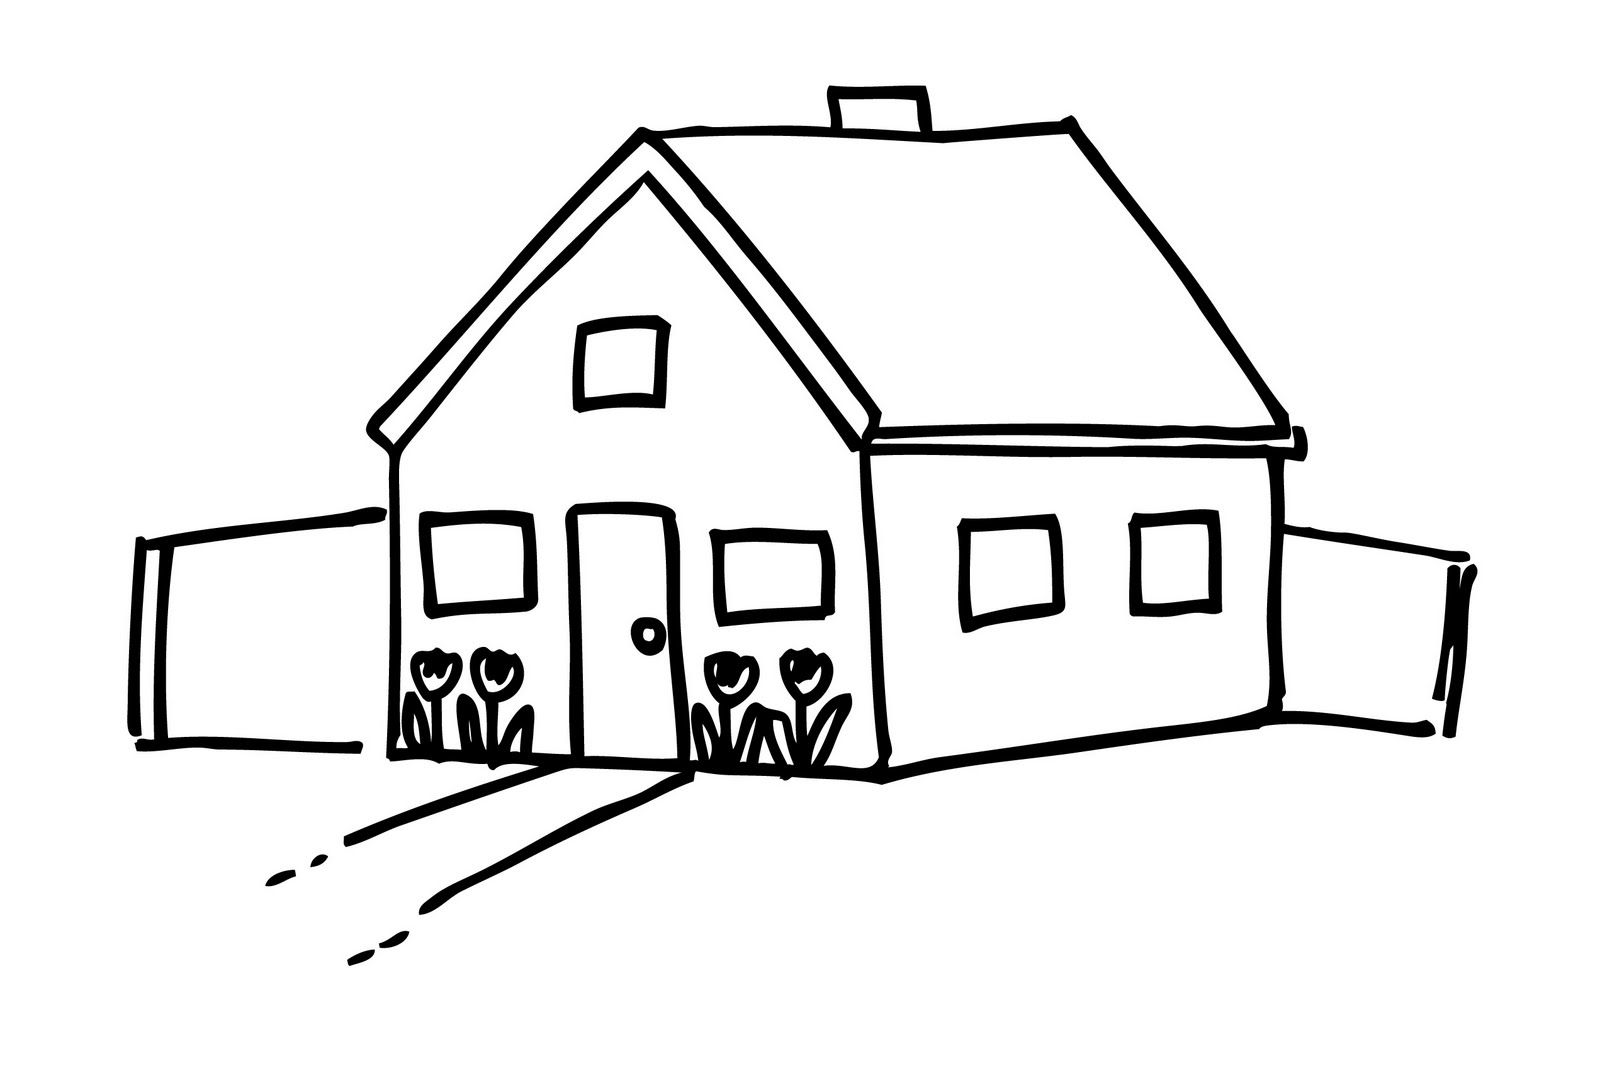 Free Simple Black And White House Clip Art Image 993 Stick